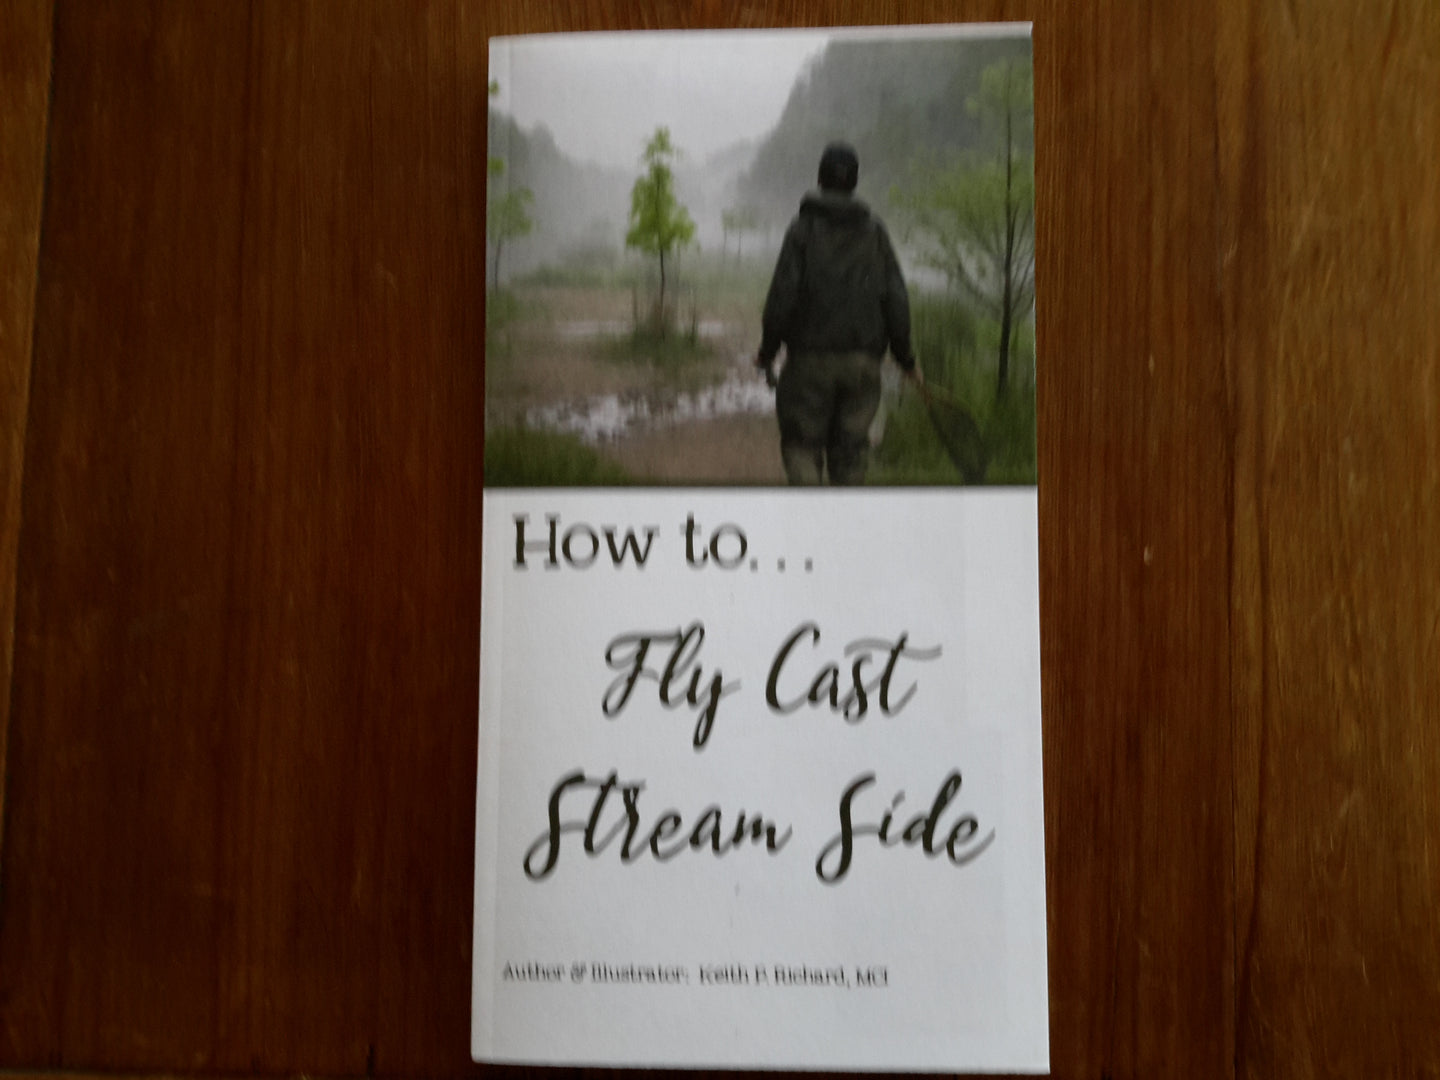 How to Fly Cast Streamside